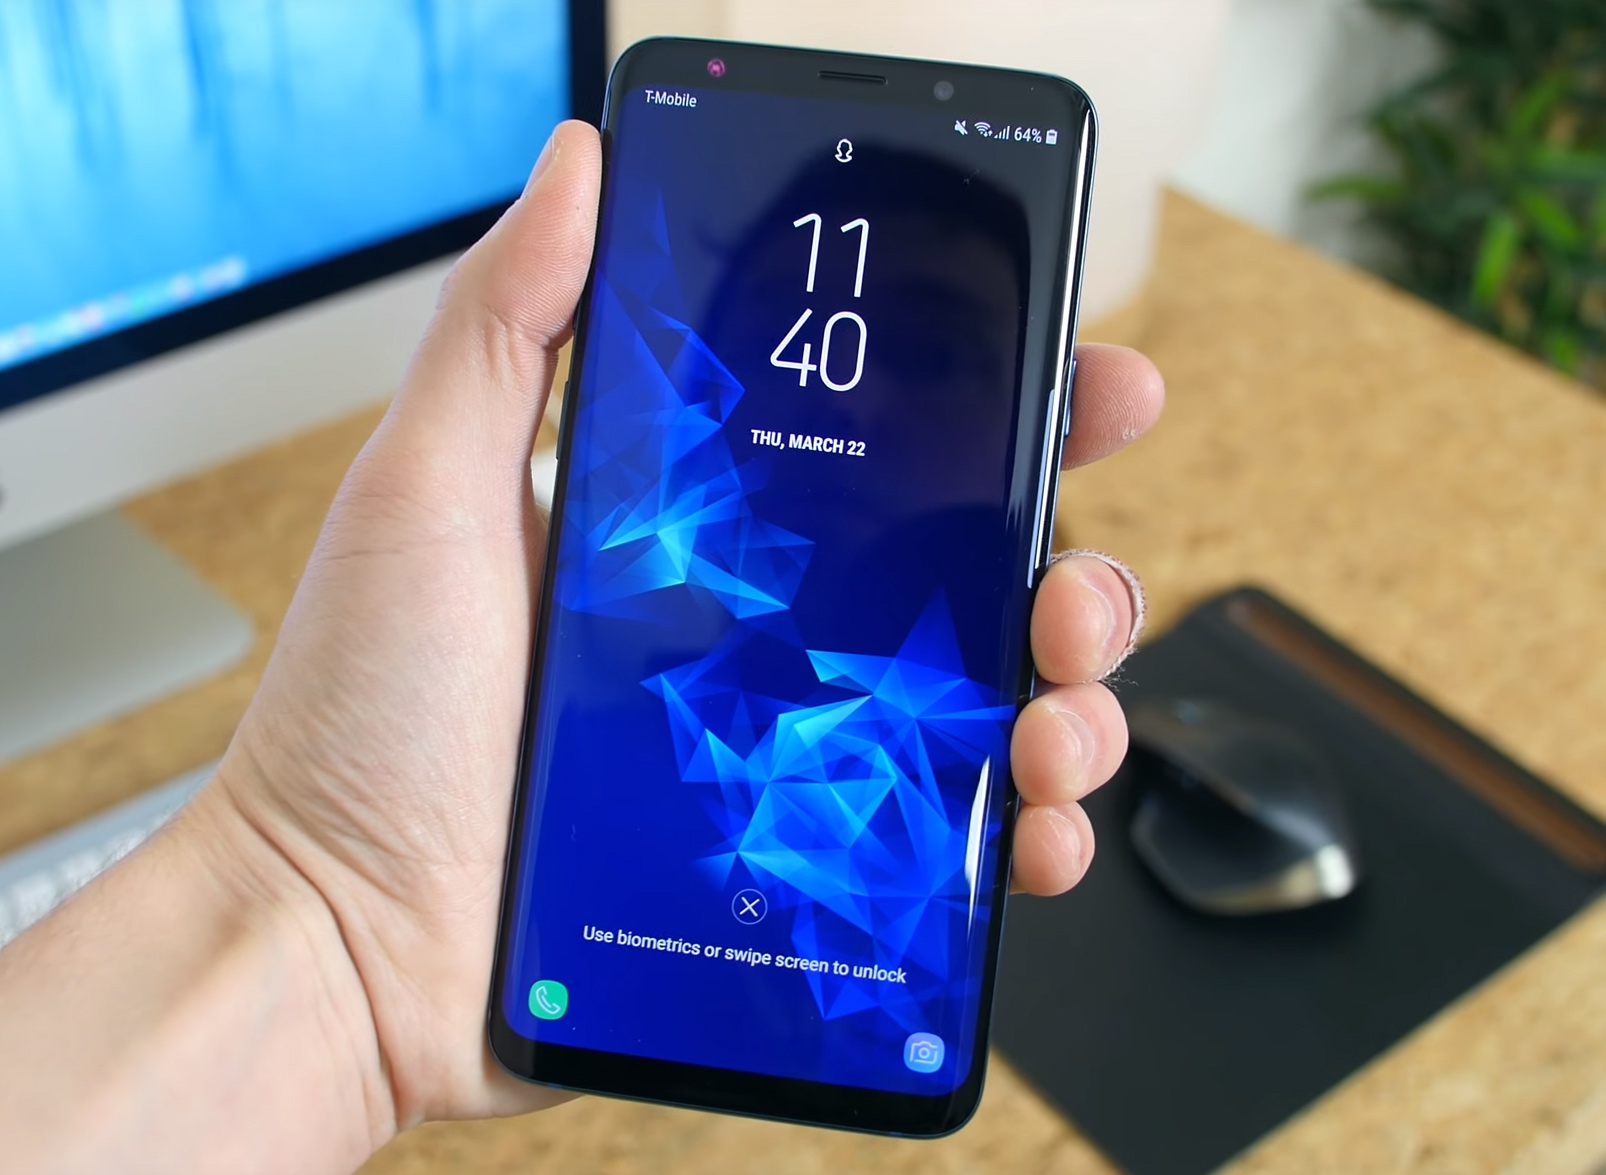 T-Mobile Galaxy S9 and S9+ receiving software updates today